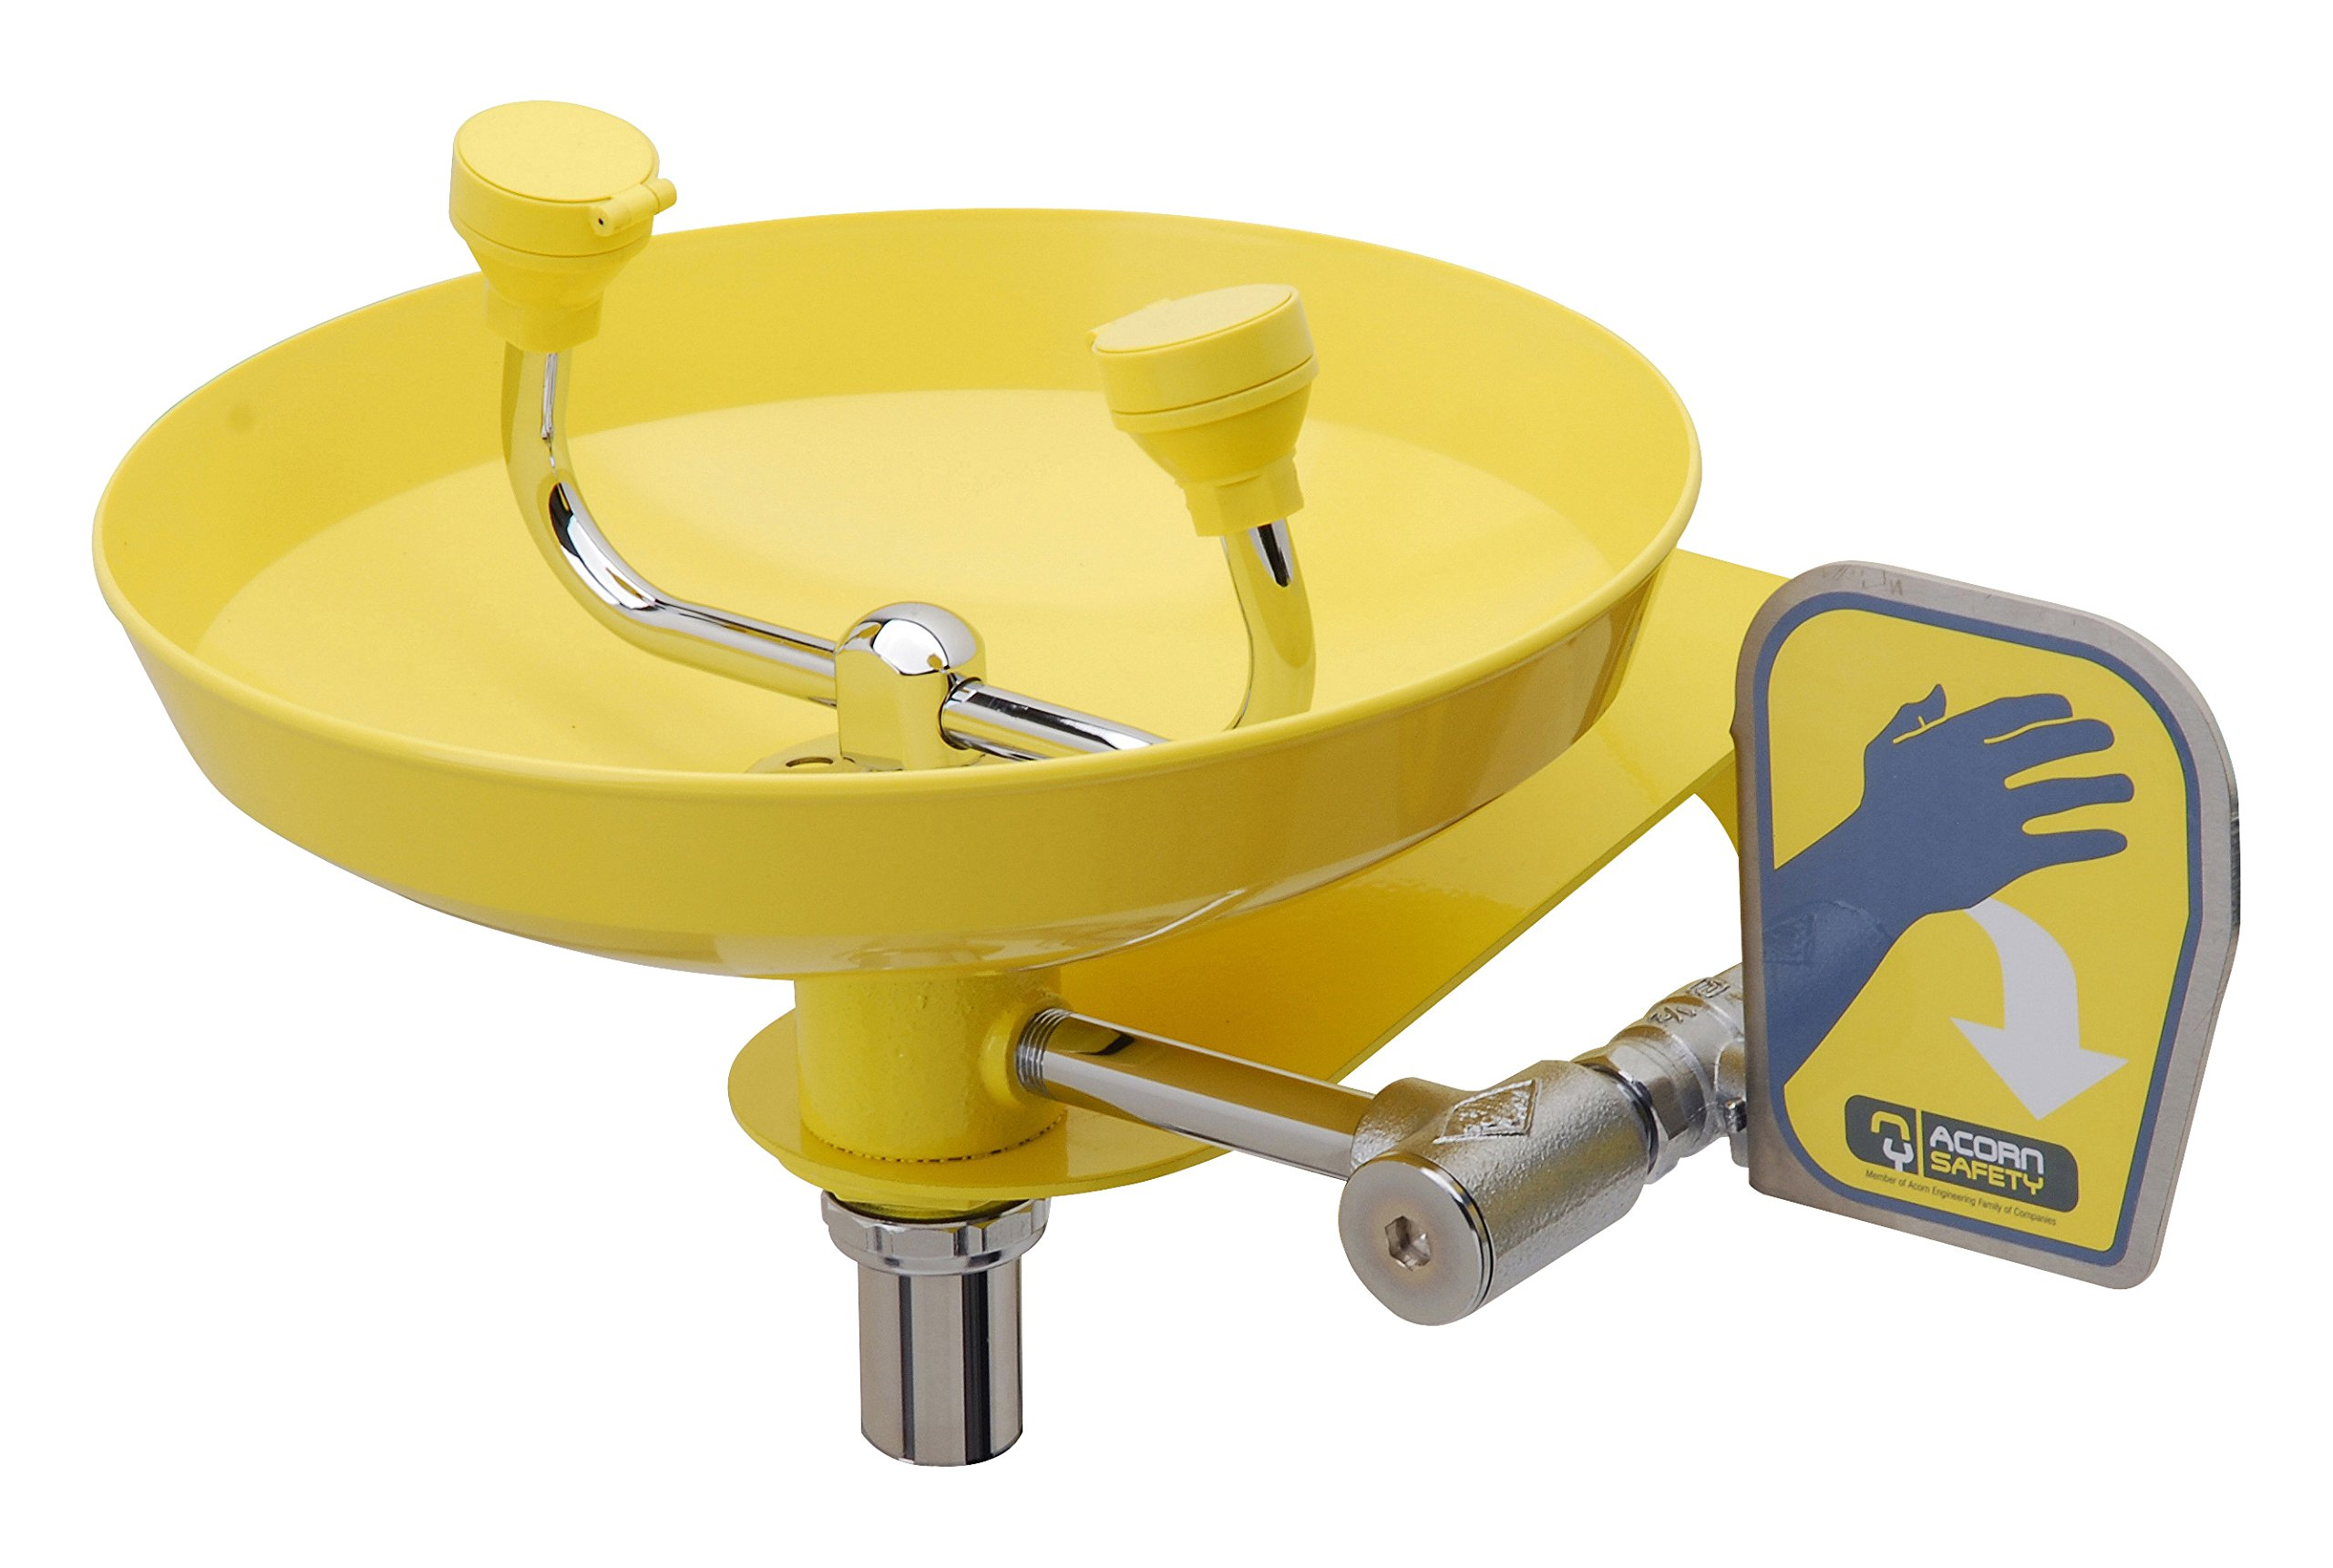 Acorn Safety Eyewash S0410 Wall Mounted, Plastic Bowl Utility Sink Faucet by Acorn